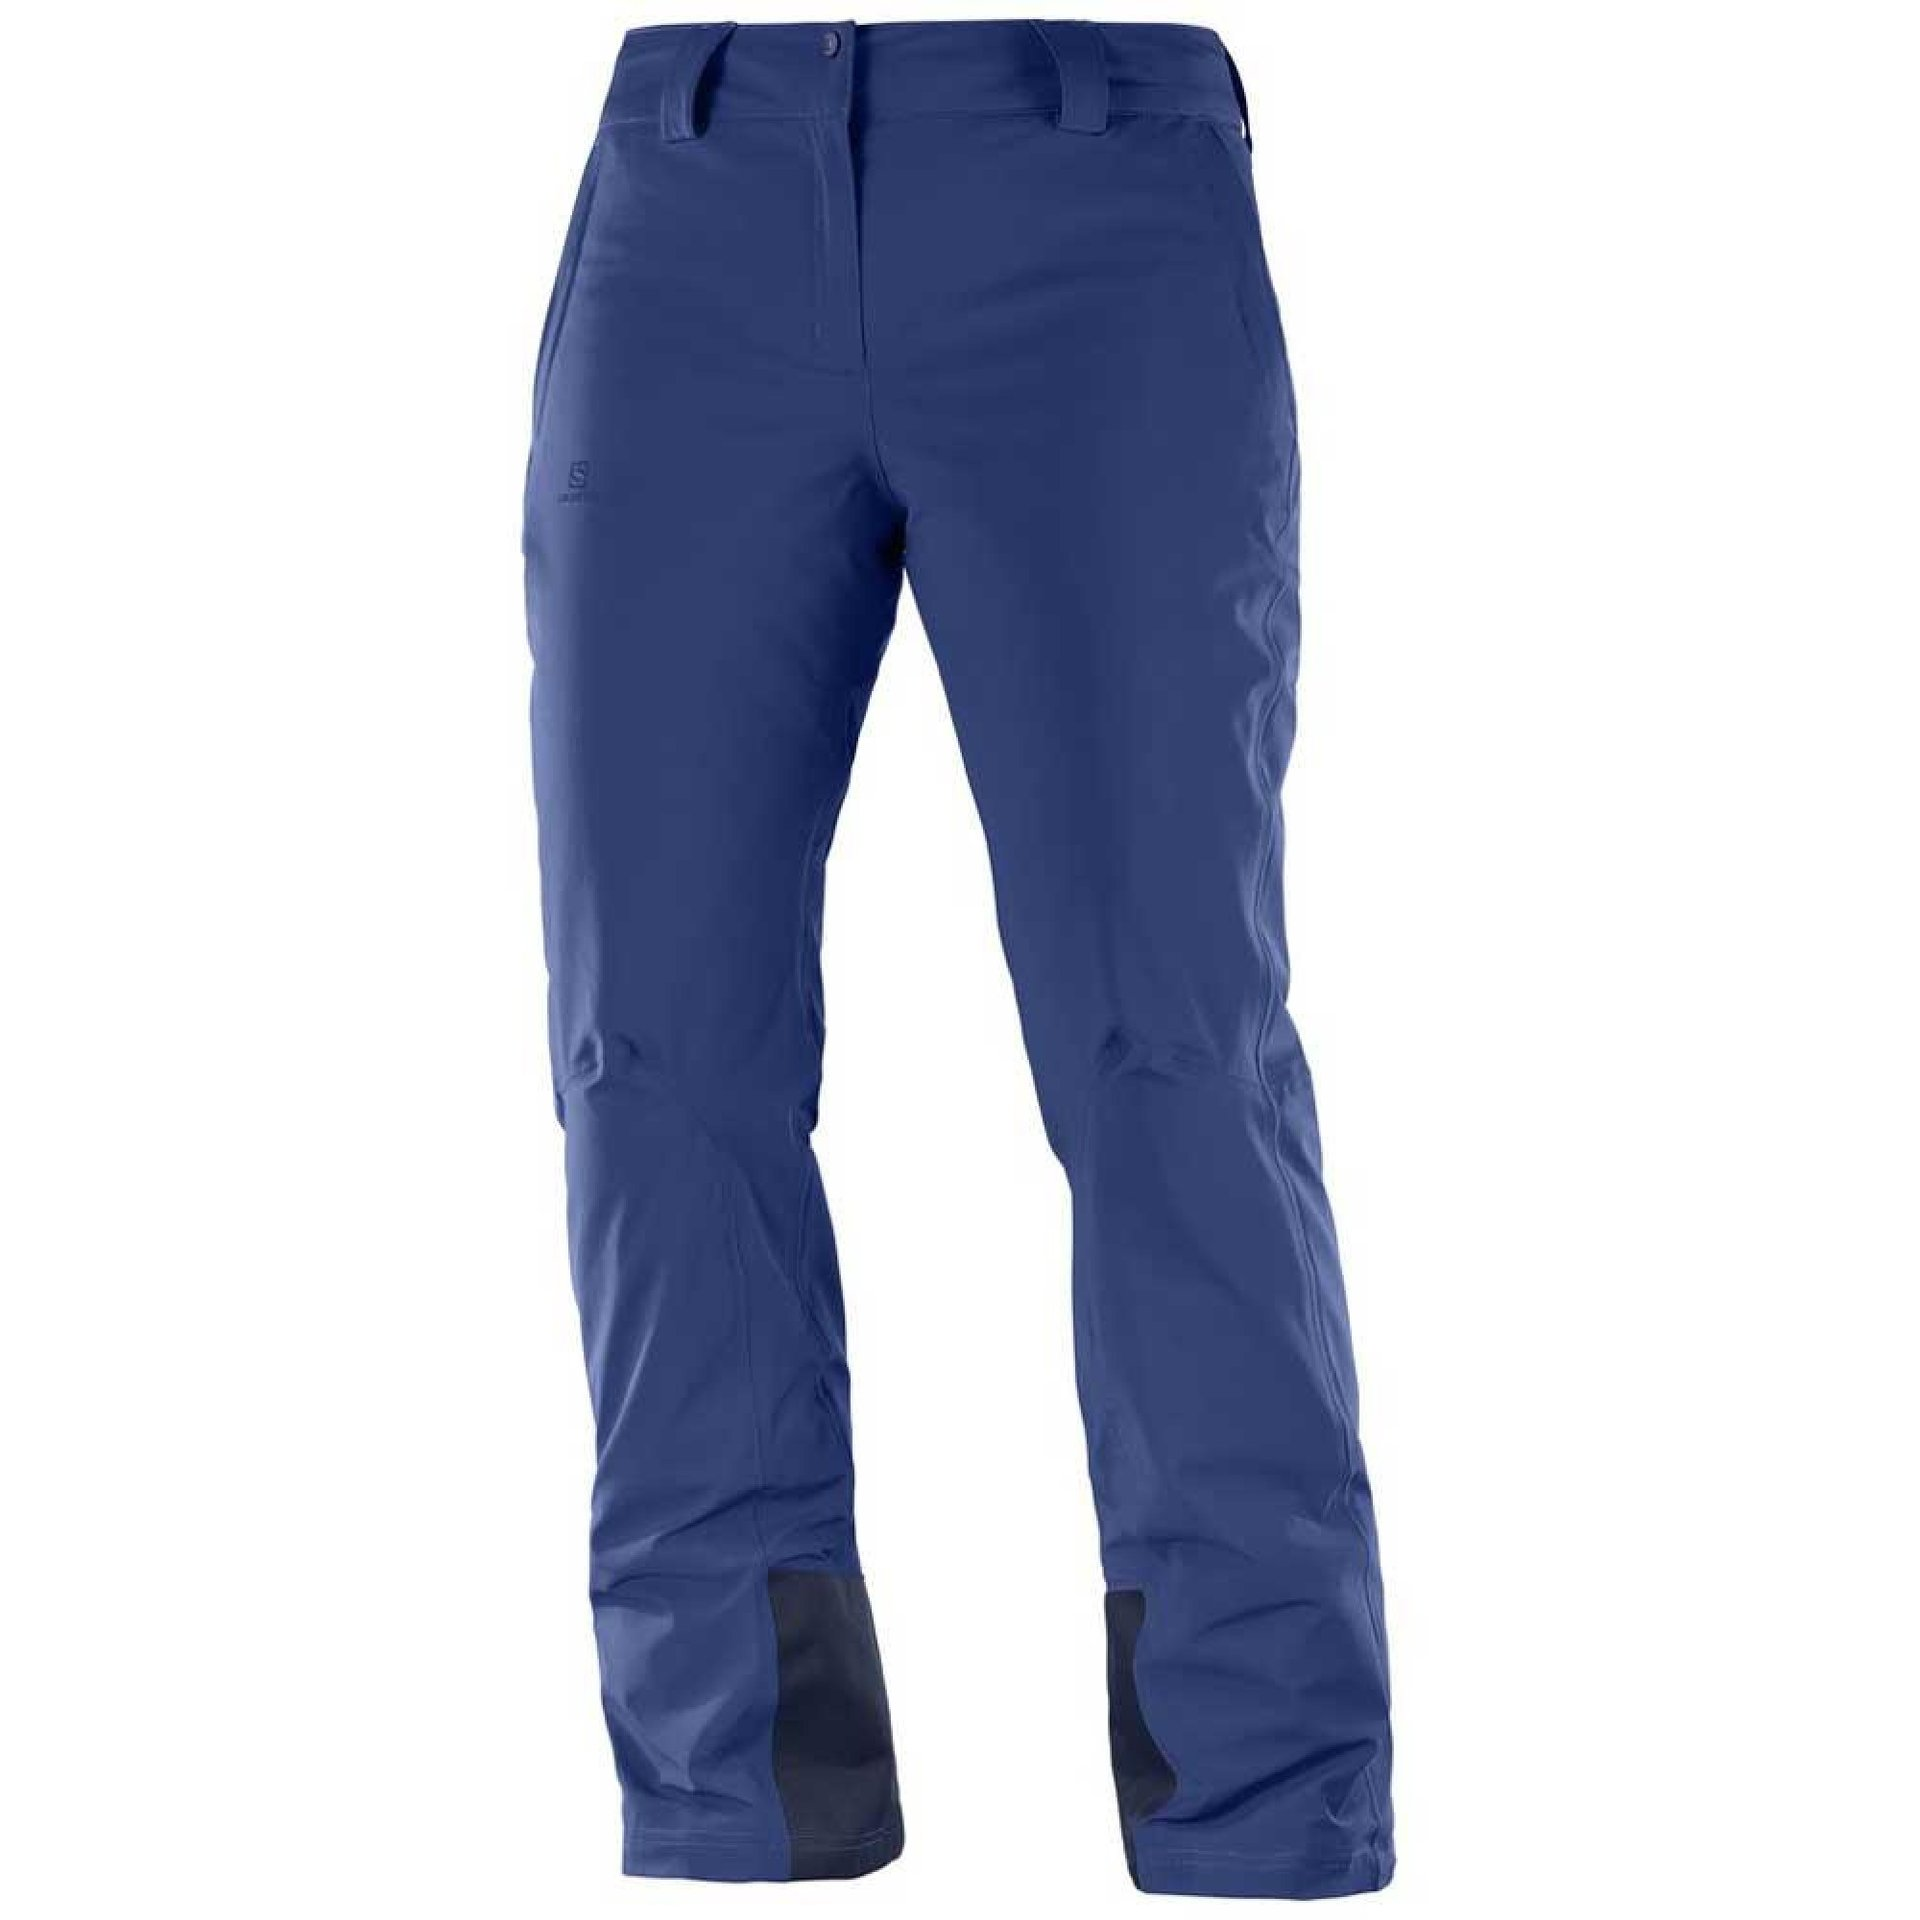 SPODNIE SALOMON ICEMANIA PANT W REGULAR MEDIEVAL BLUE